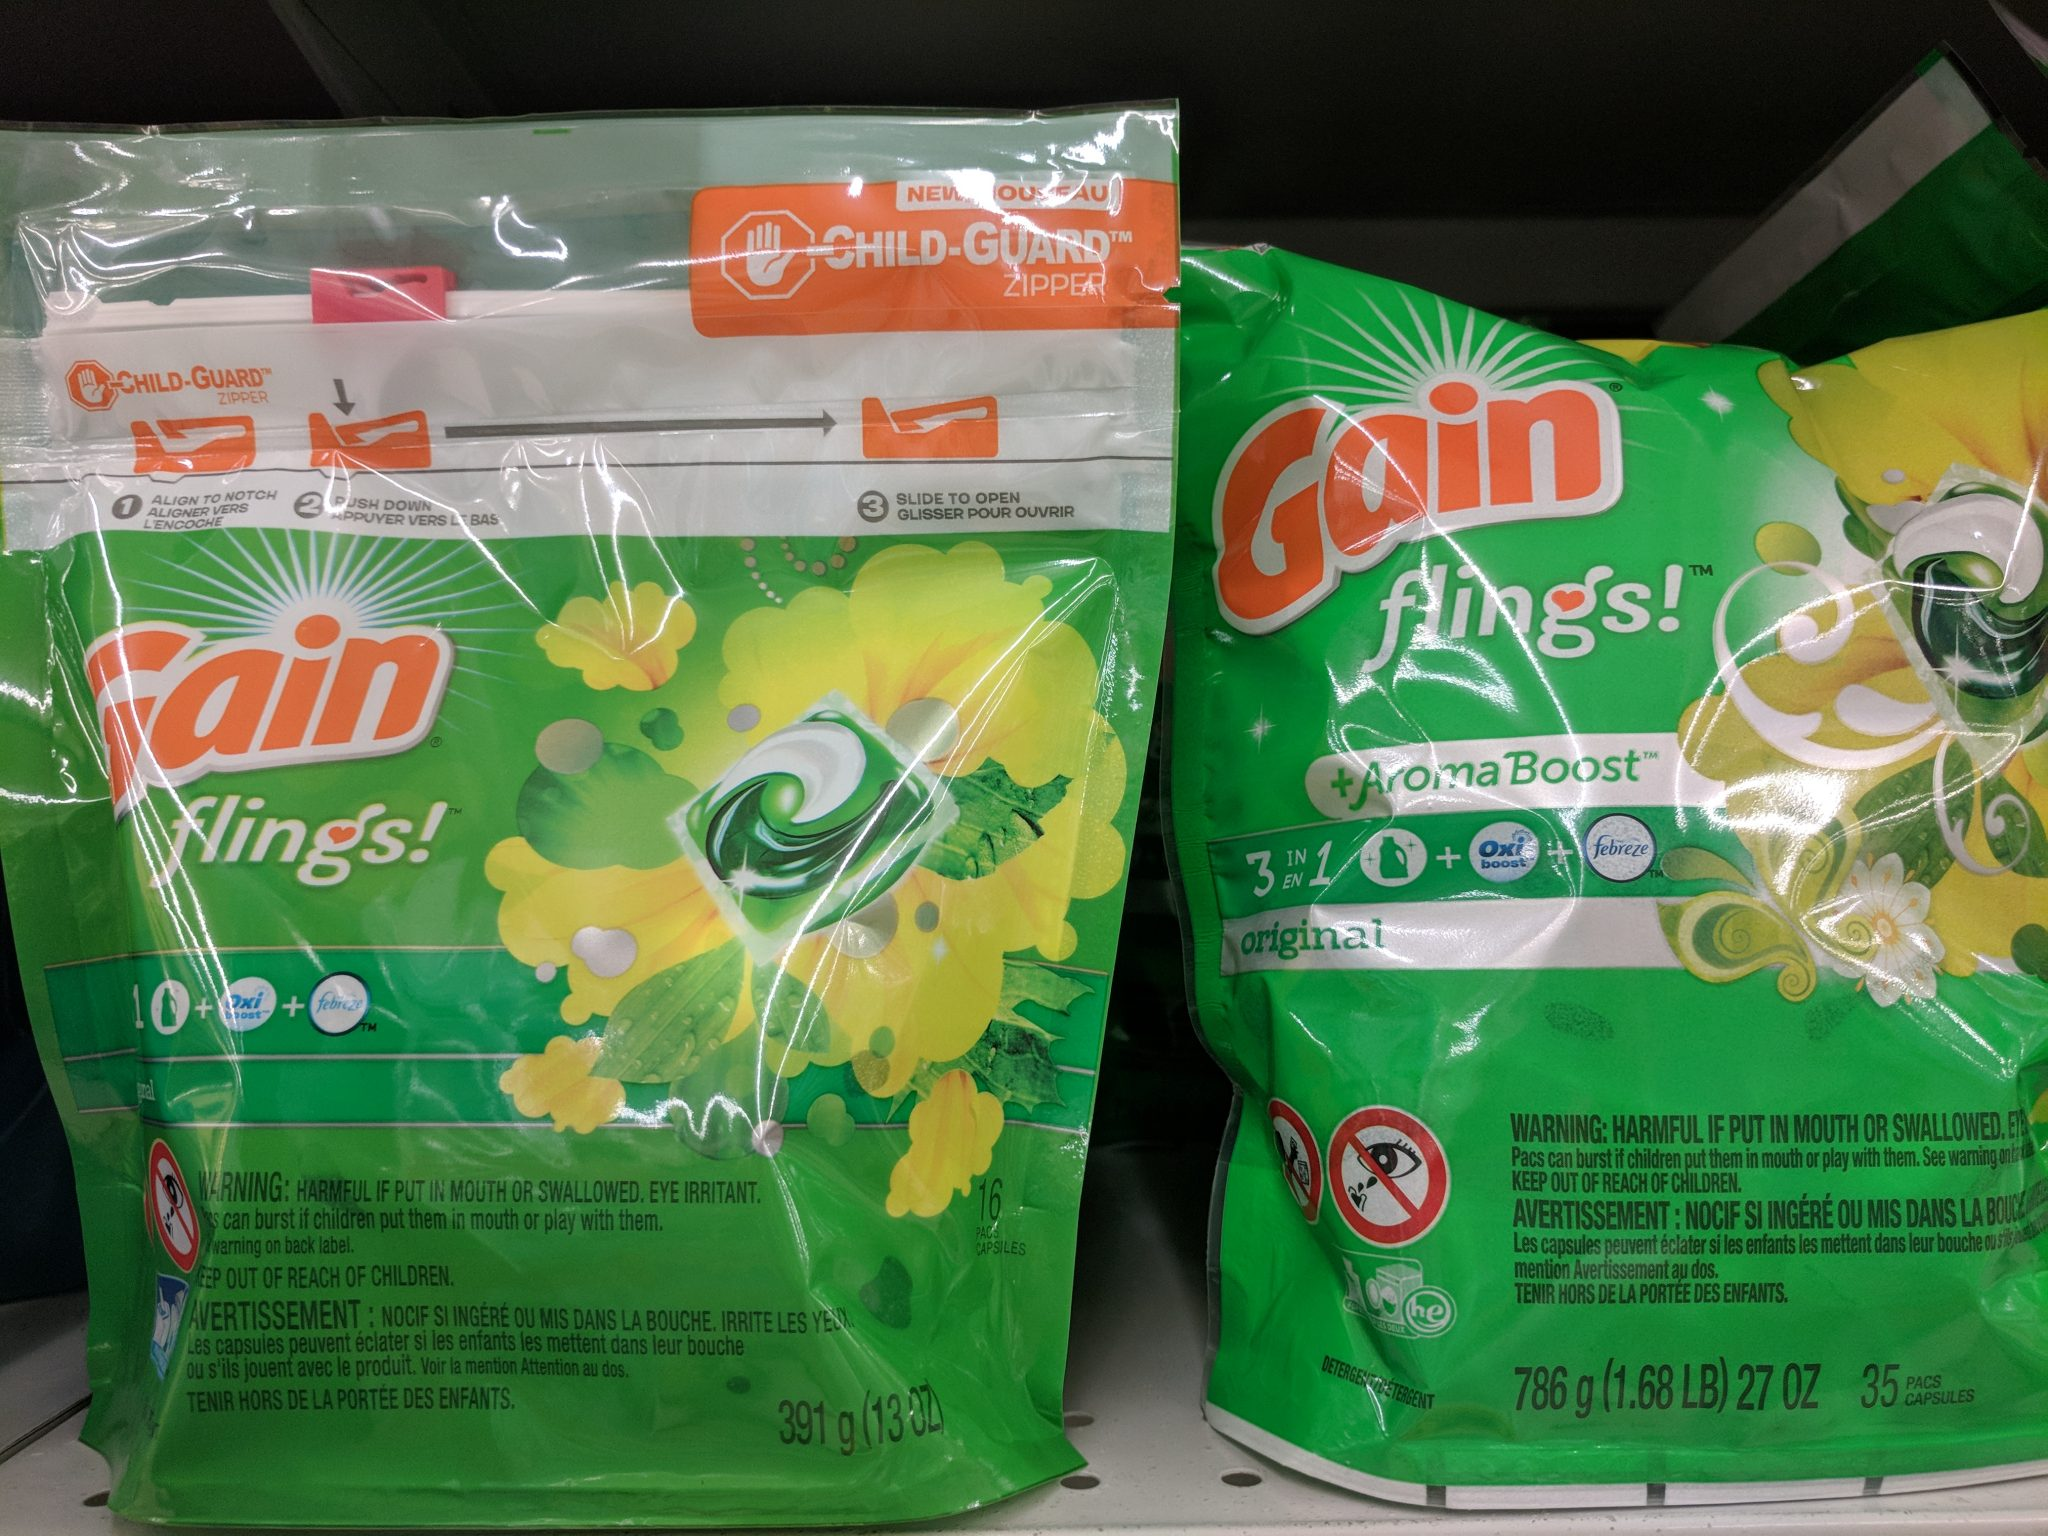 Gain Flings Deal at Walmart! Printable Coupon!!